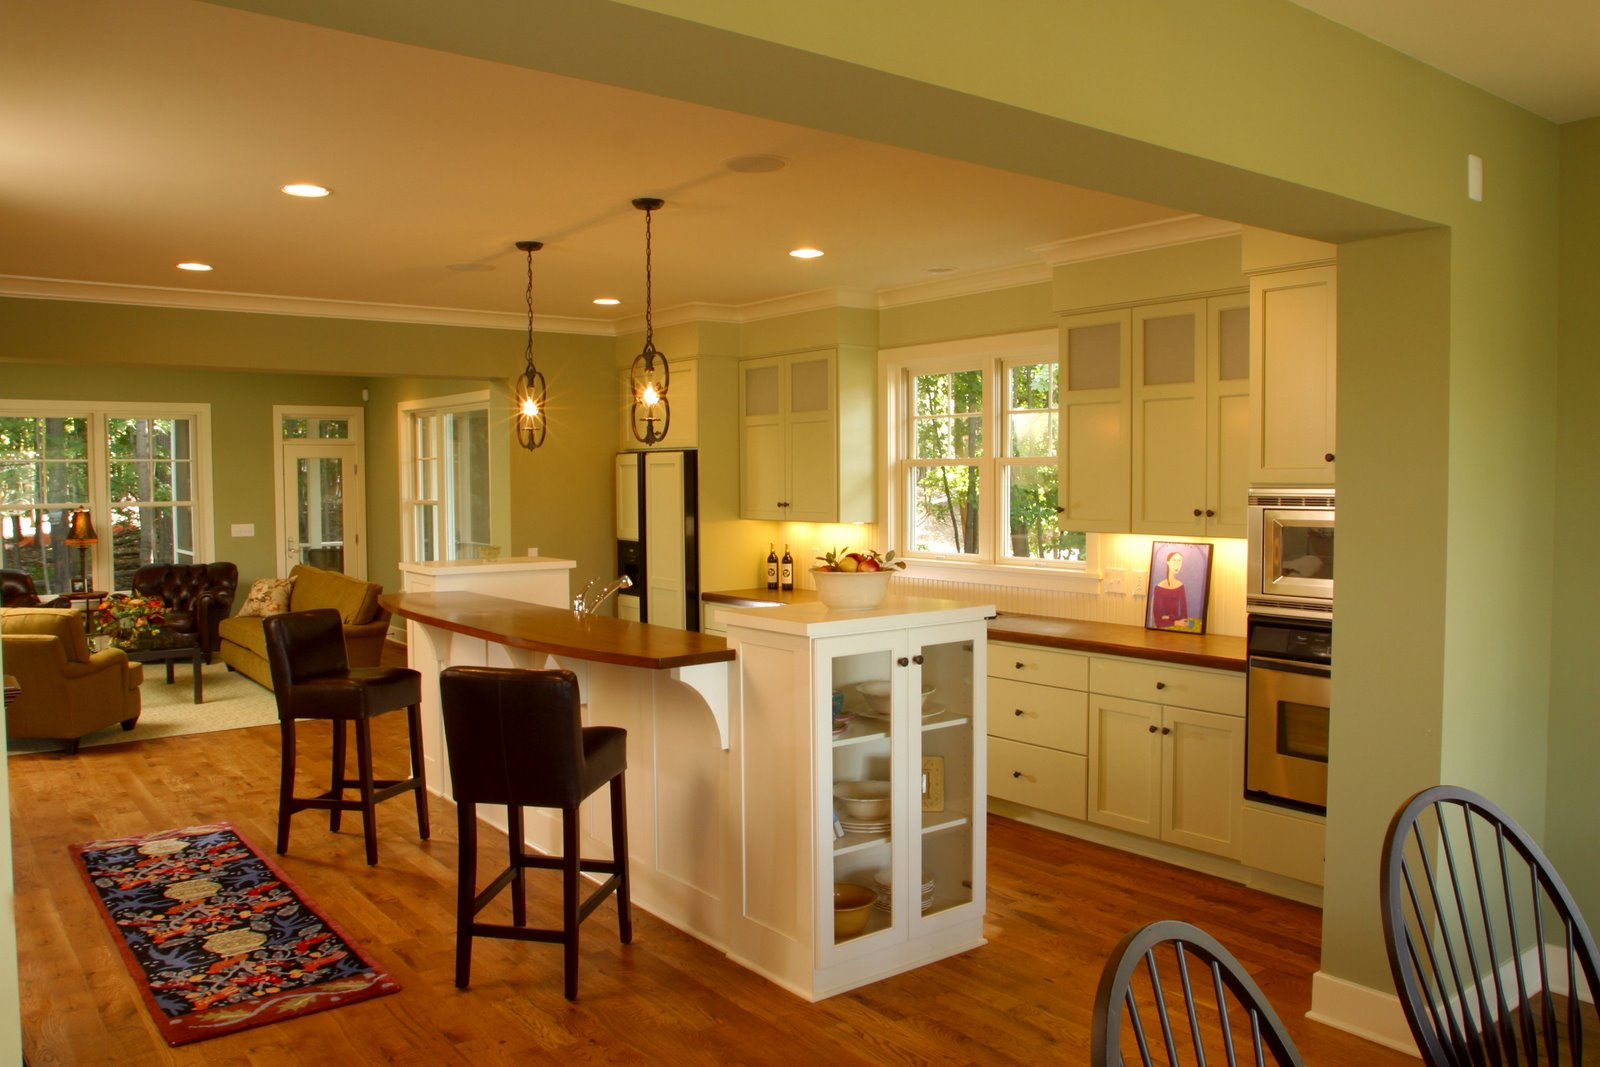 Simply elegant home designs blog home design ideas drop for Small kitchen floor ideas